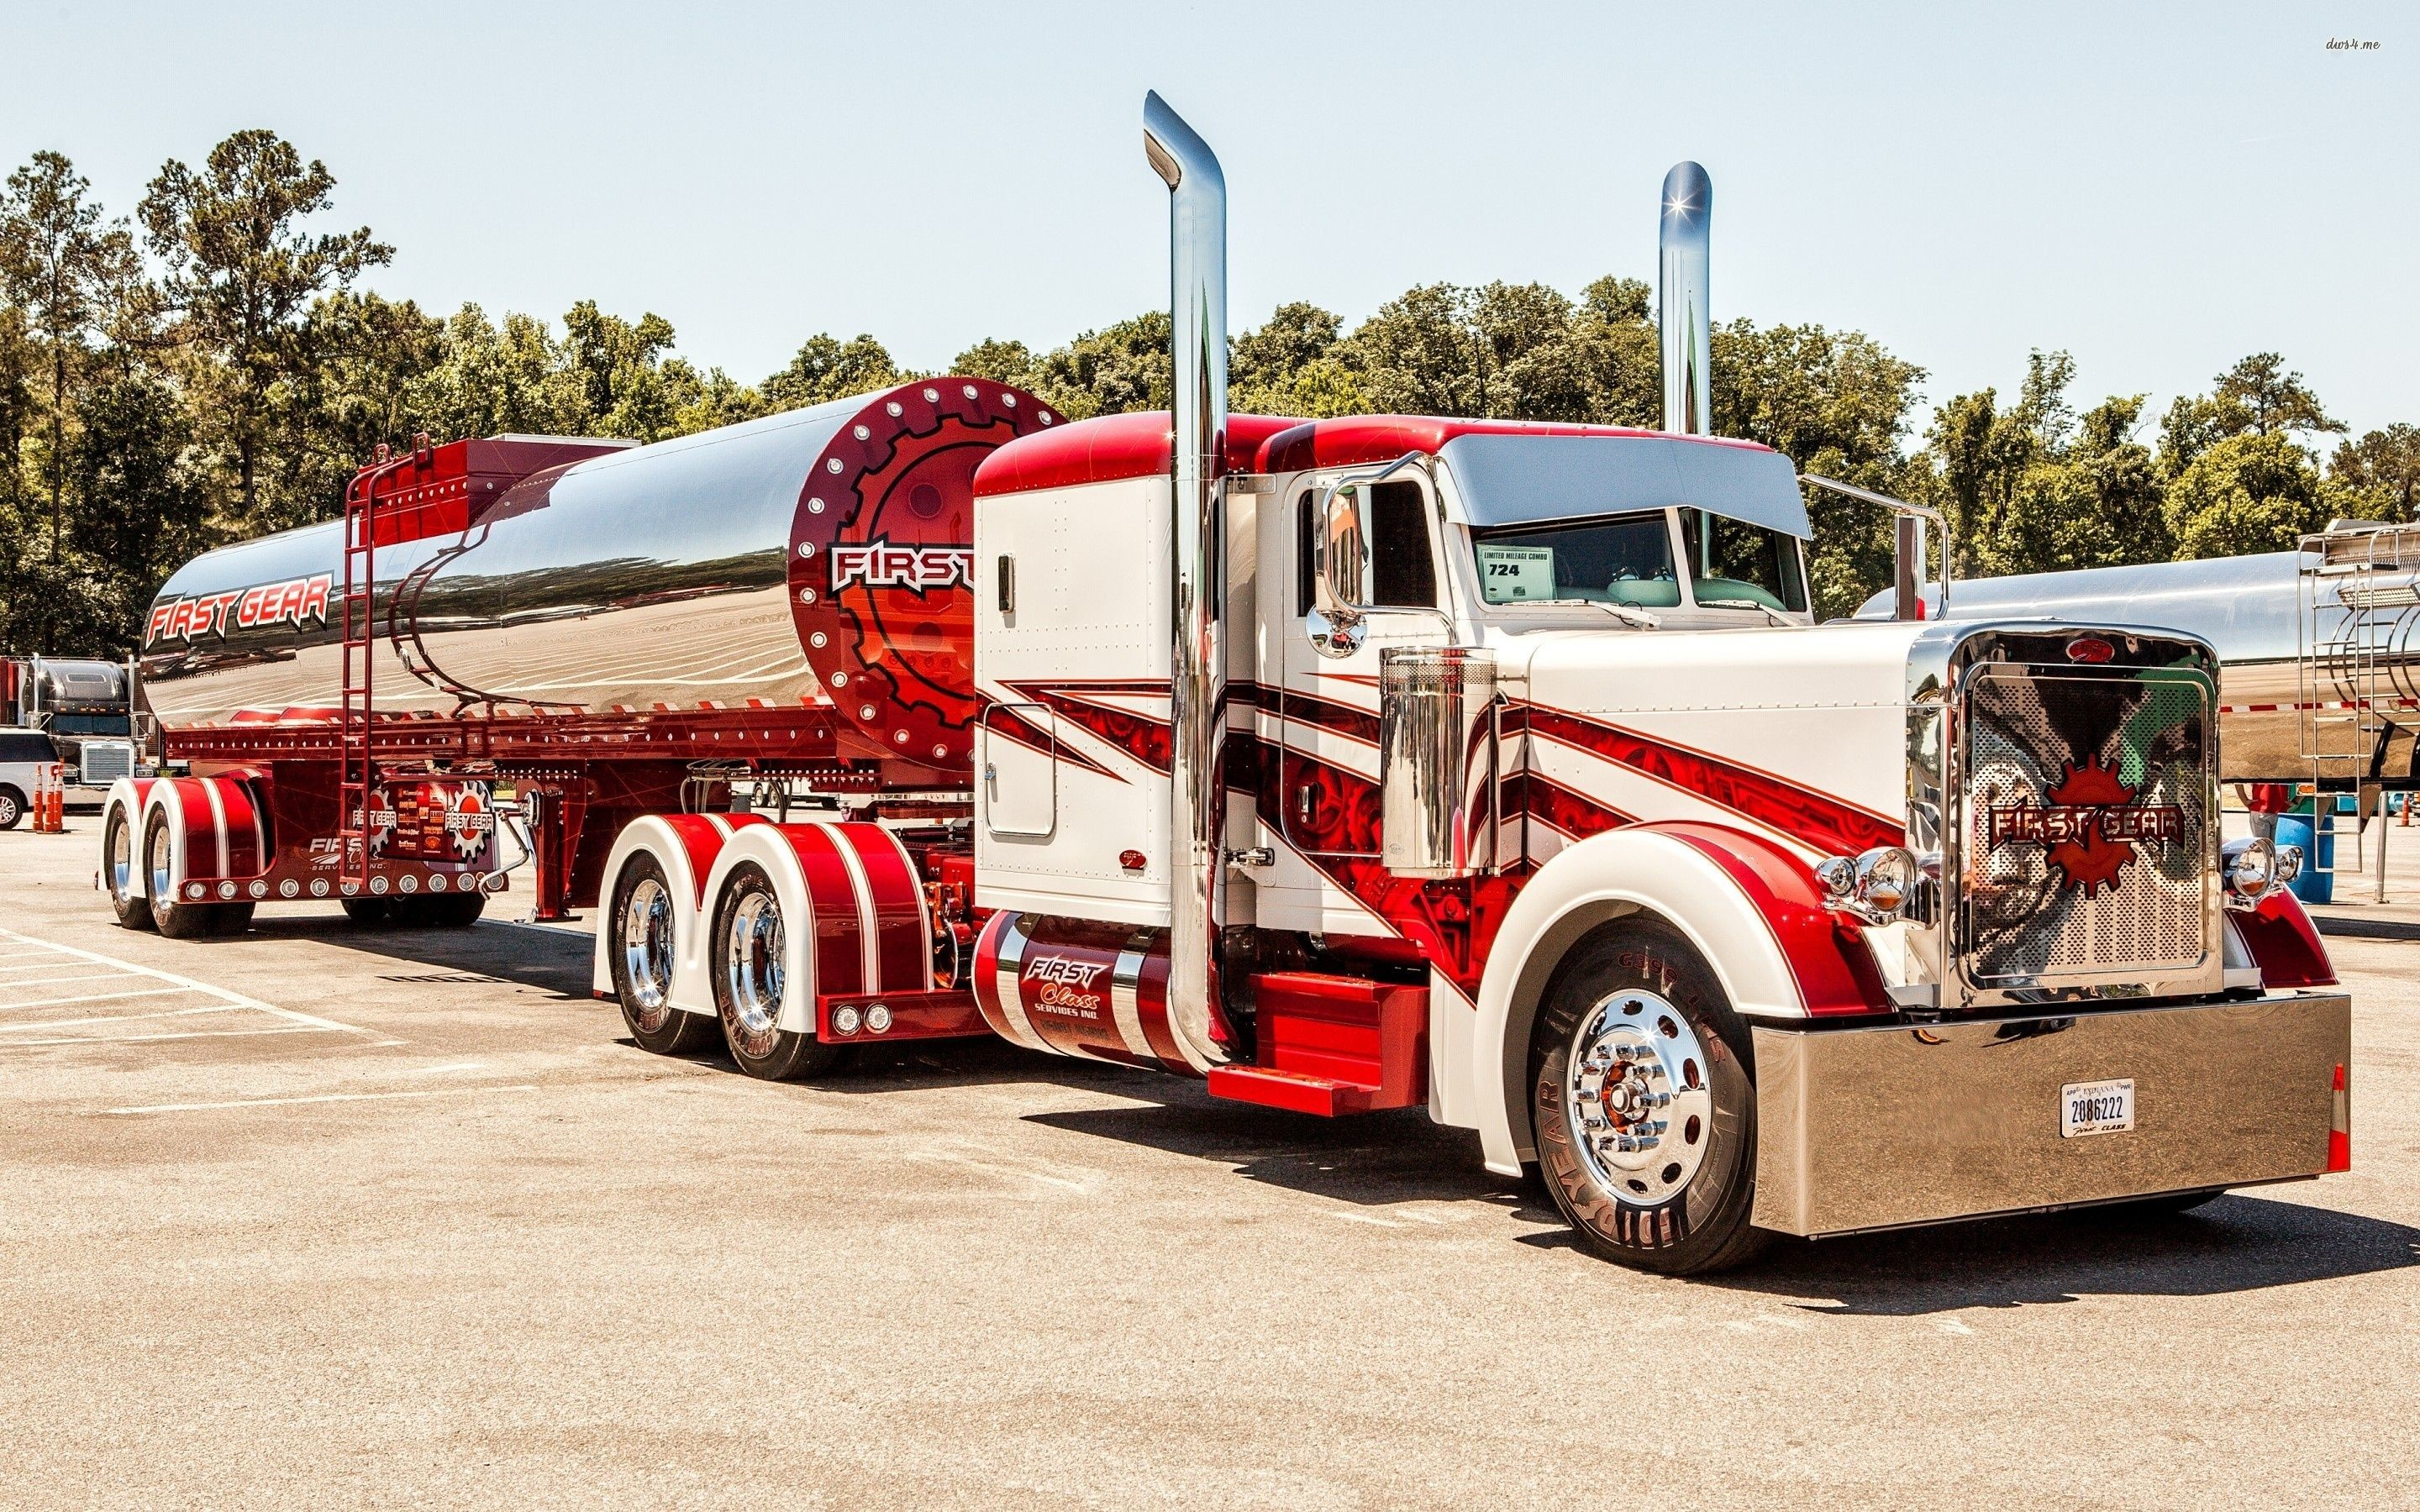 2880x1800 Peterbilt truck wallpaper